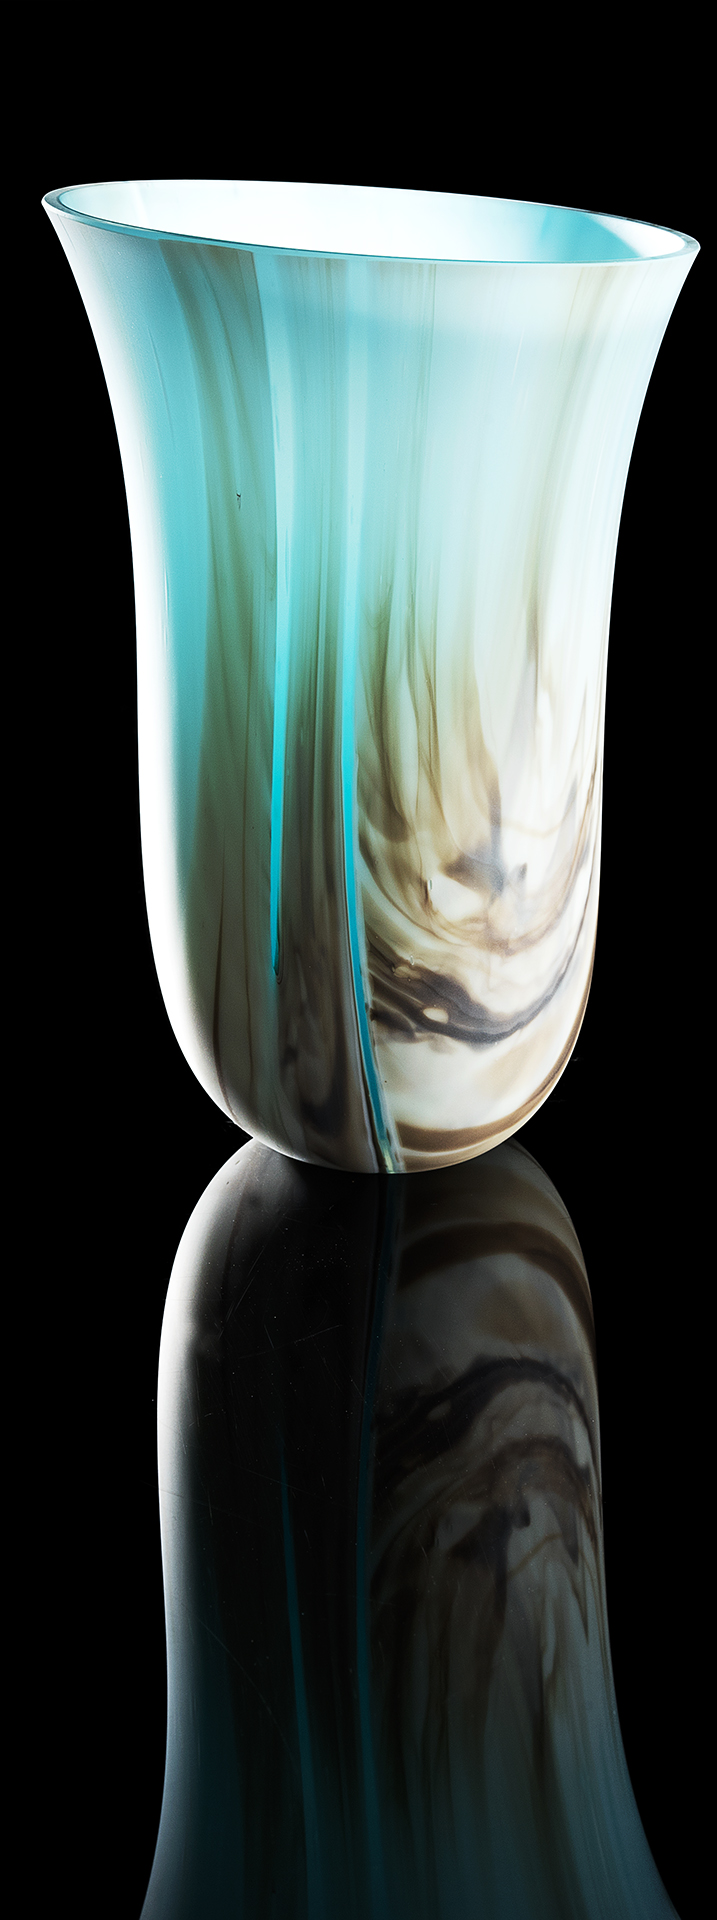 Keith Sheppard Glass Artistry